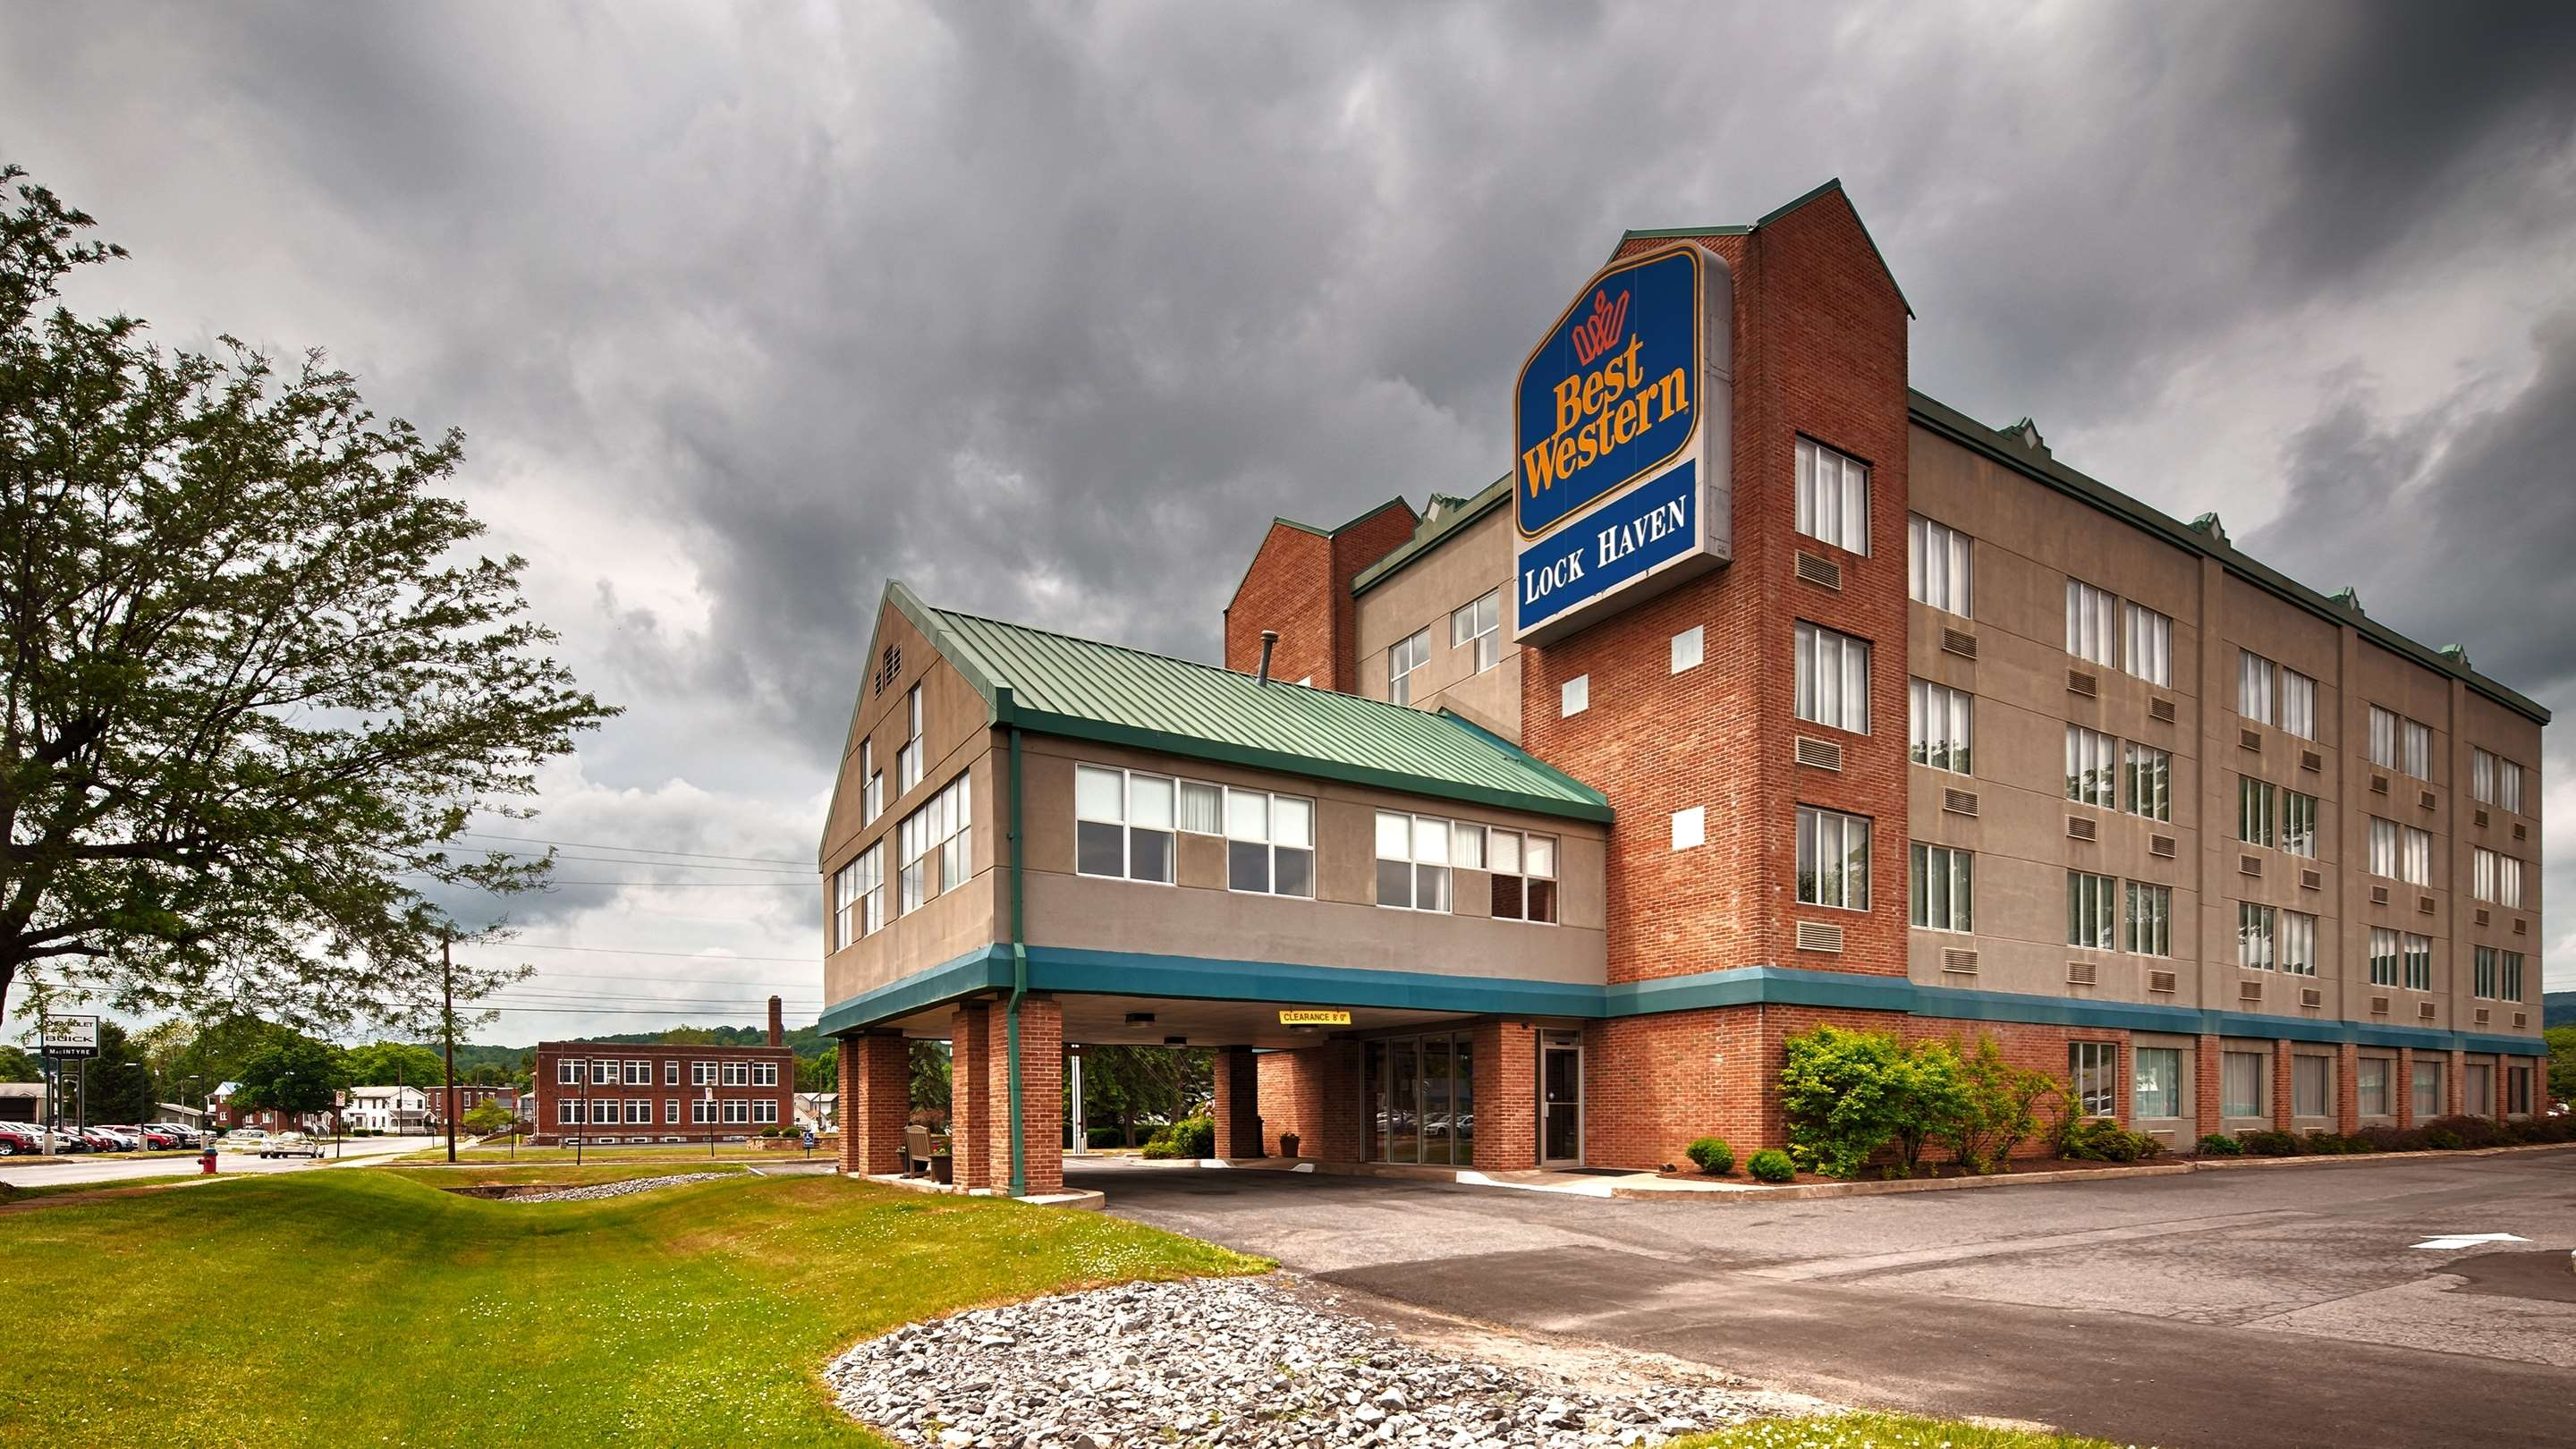 Best Western Lock Haven image 0